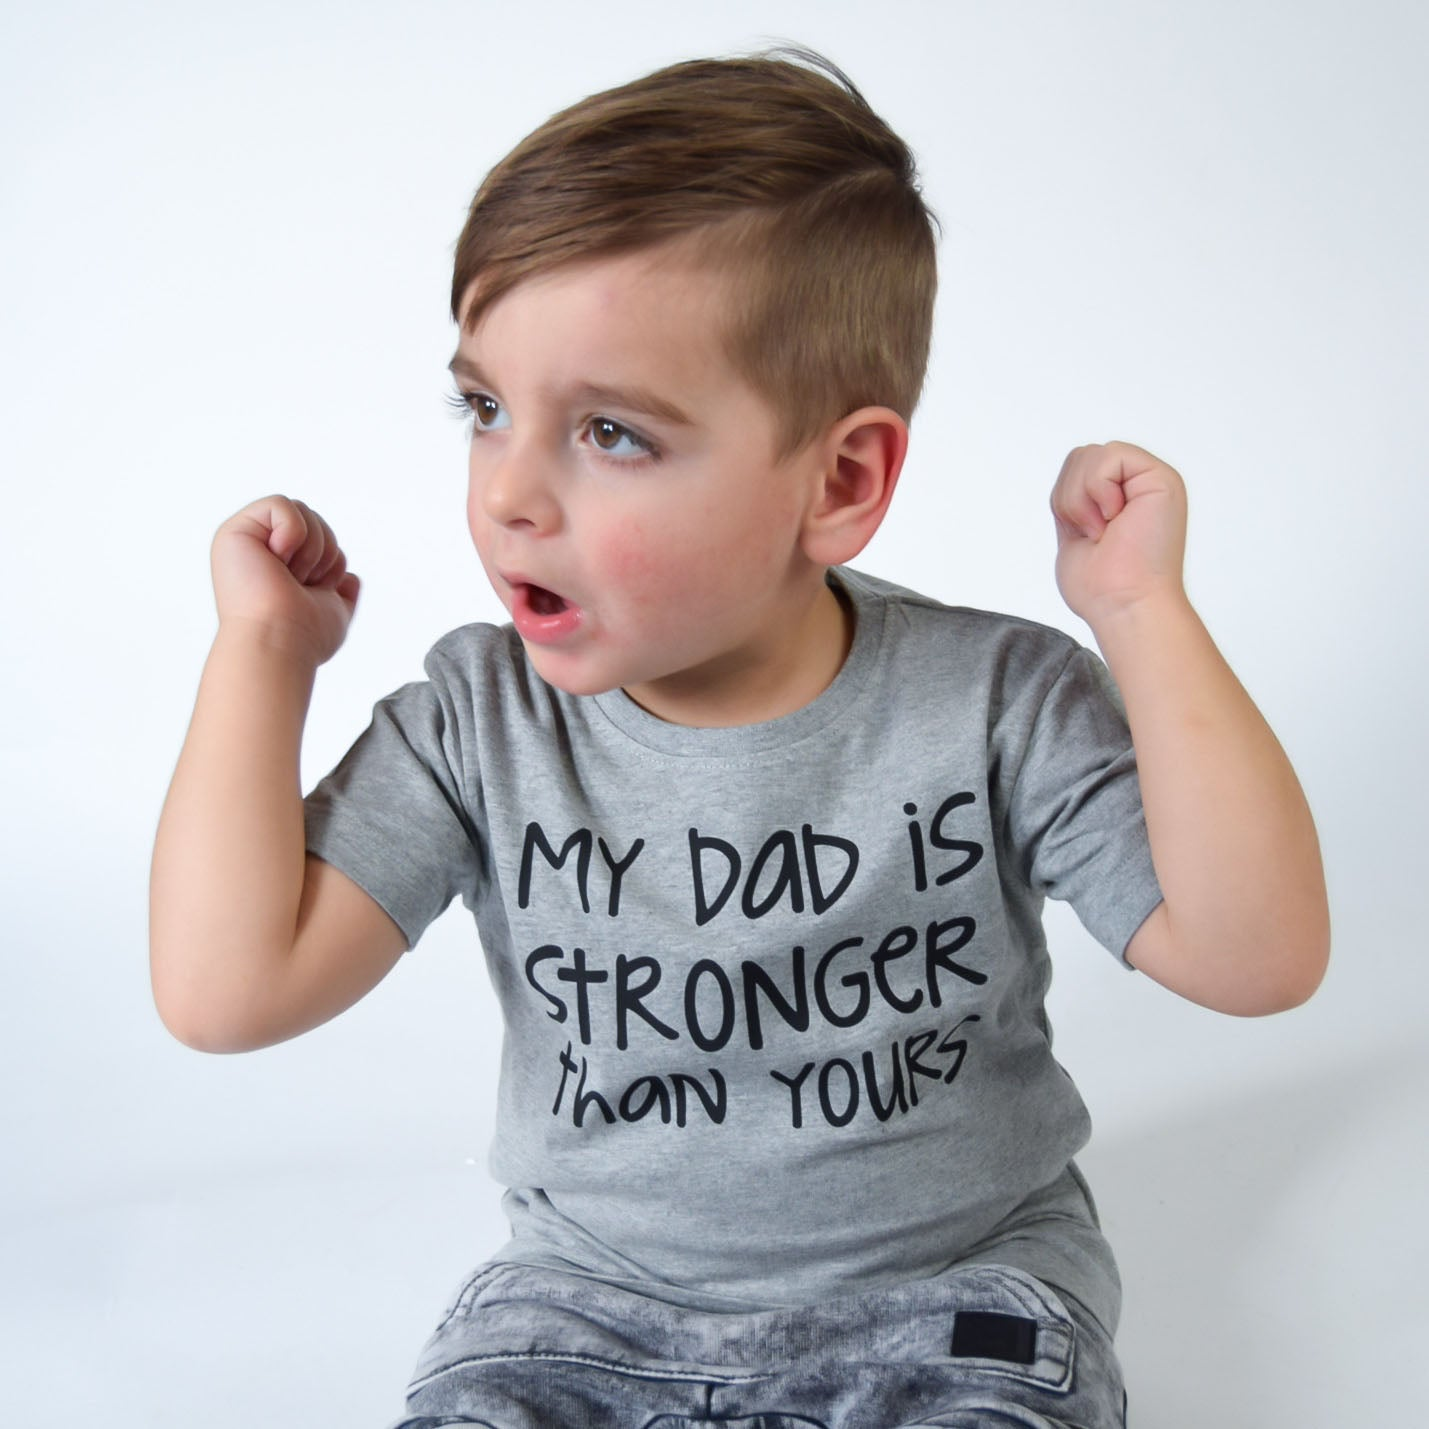 'My dad is stronger than yours' kids shortsleeve shirt